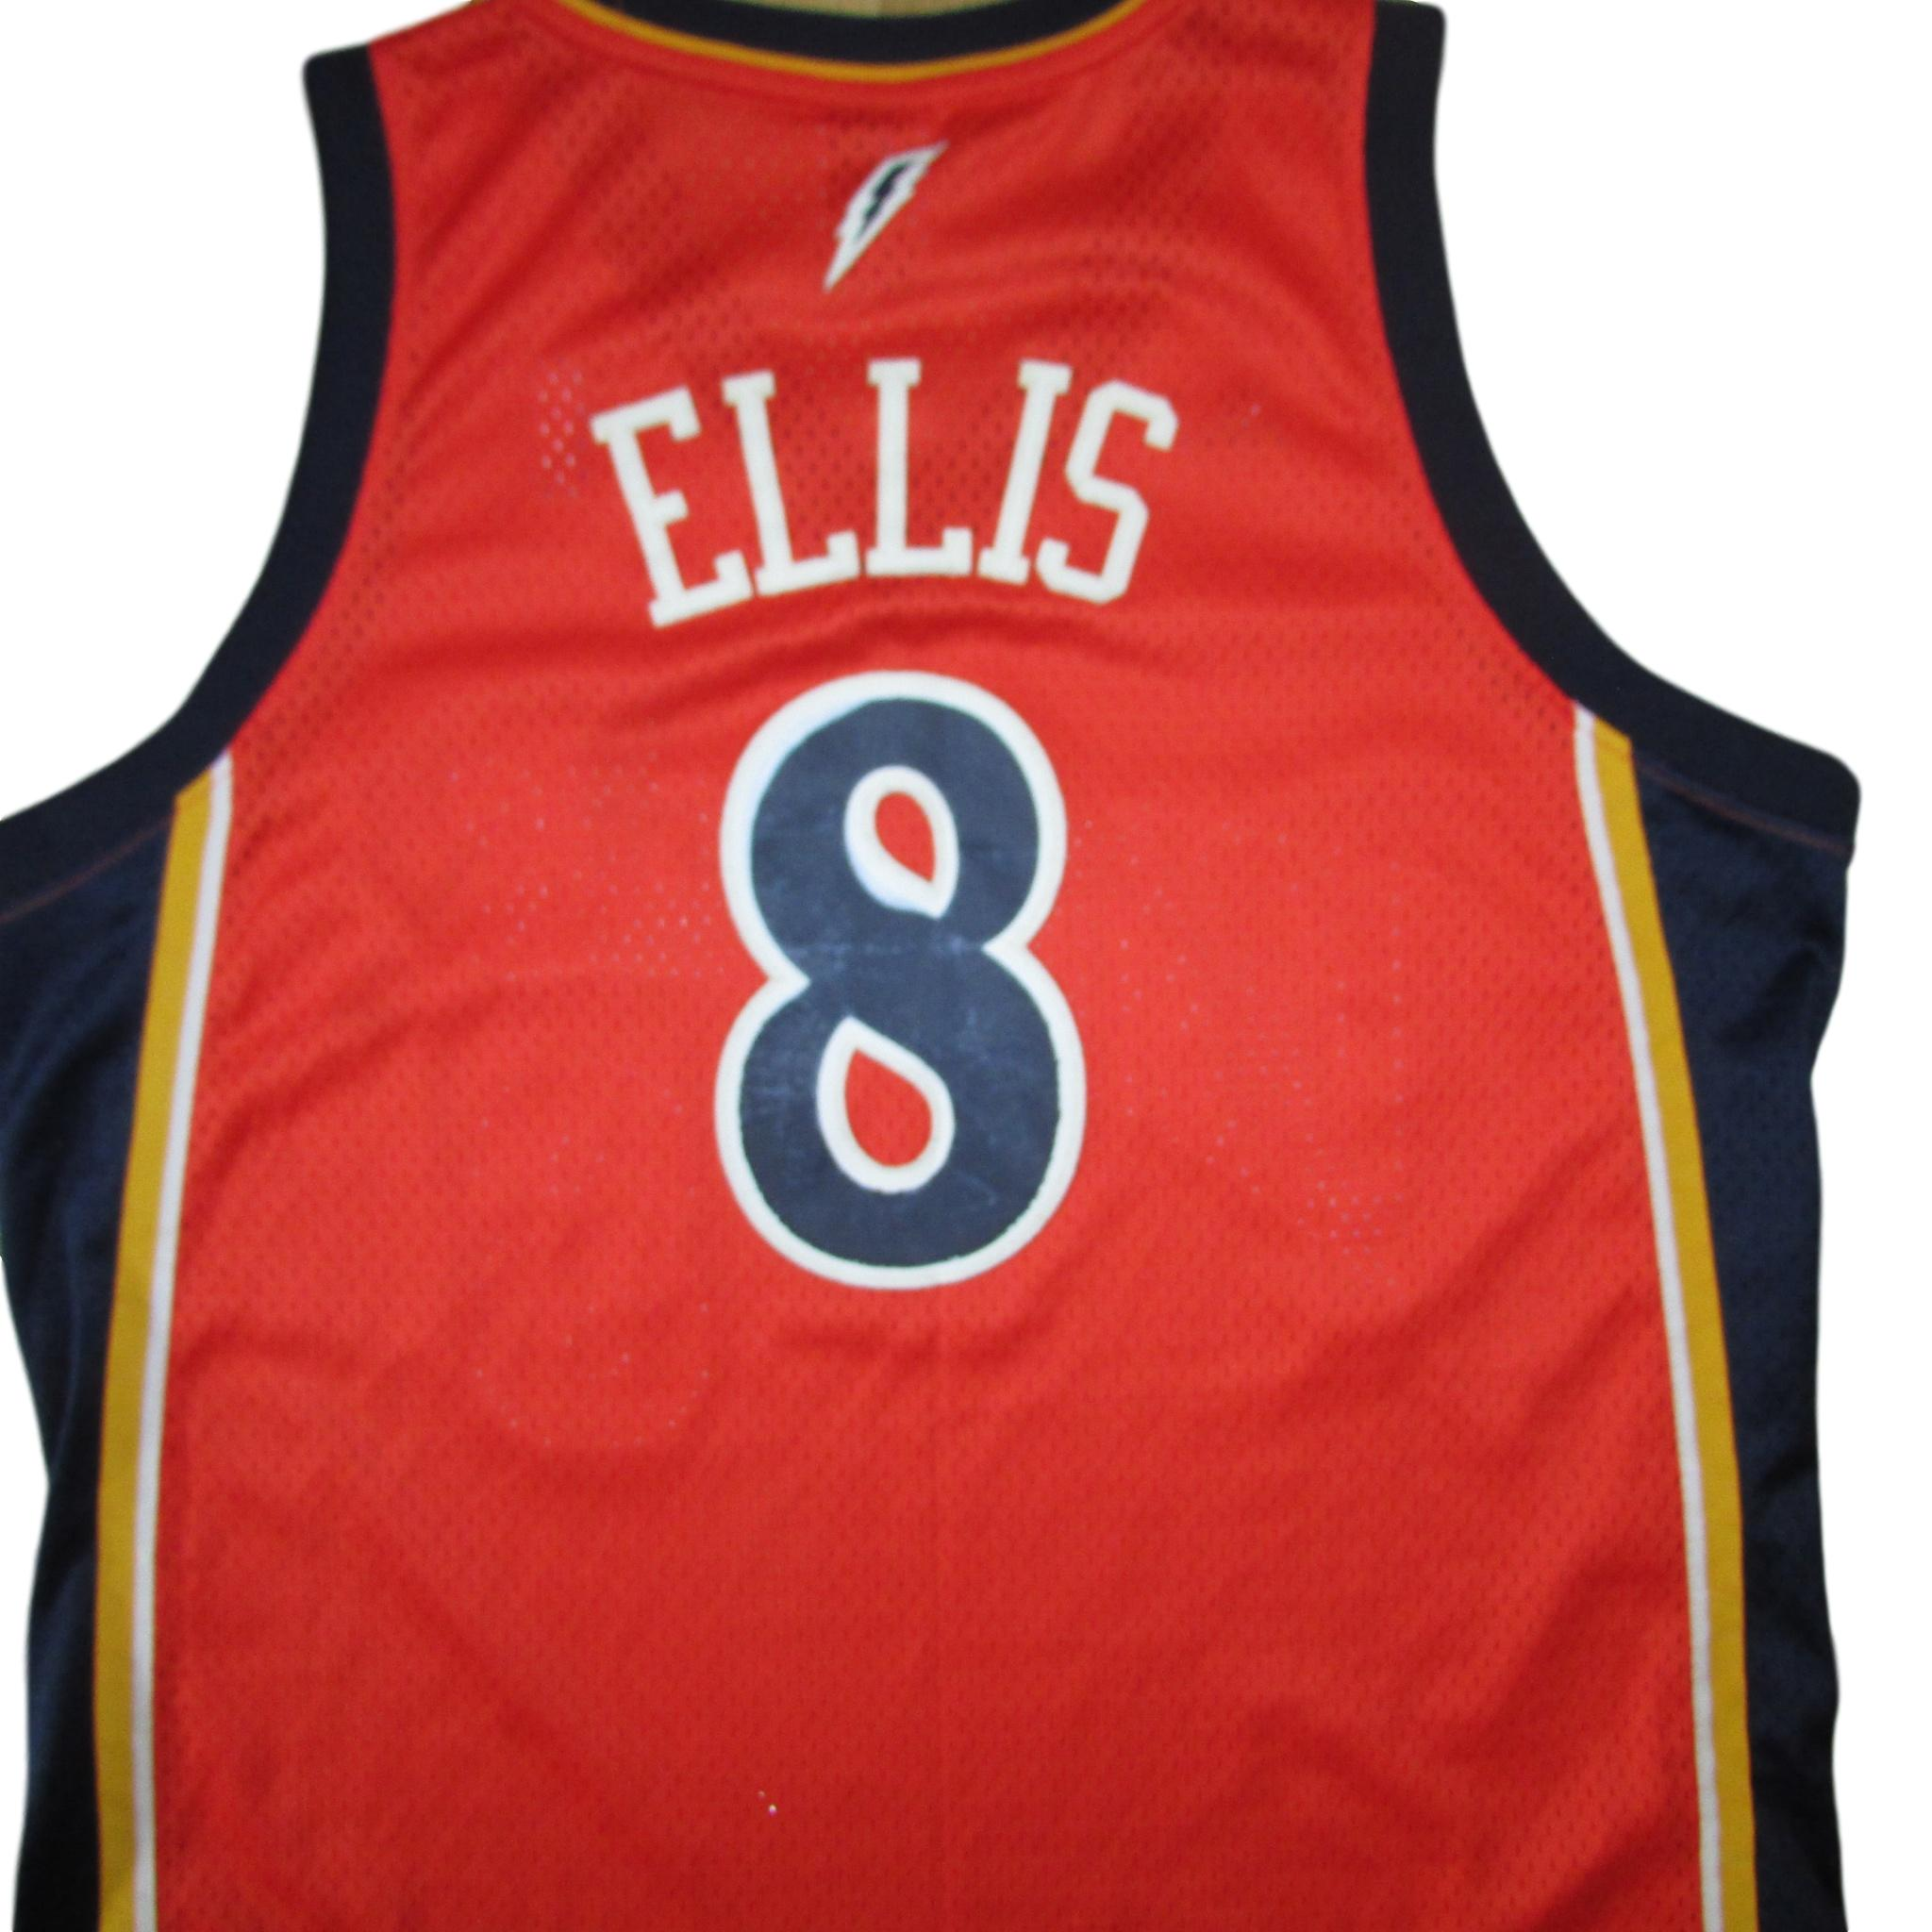 Golden State Warriors Monta Ellis Basketball Jersey We Believe Alternative Colors Sz XL